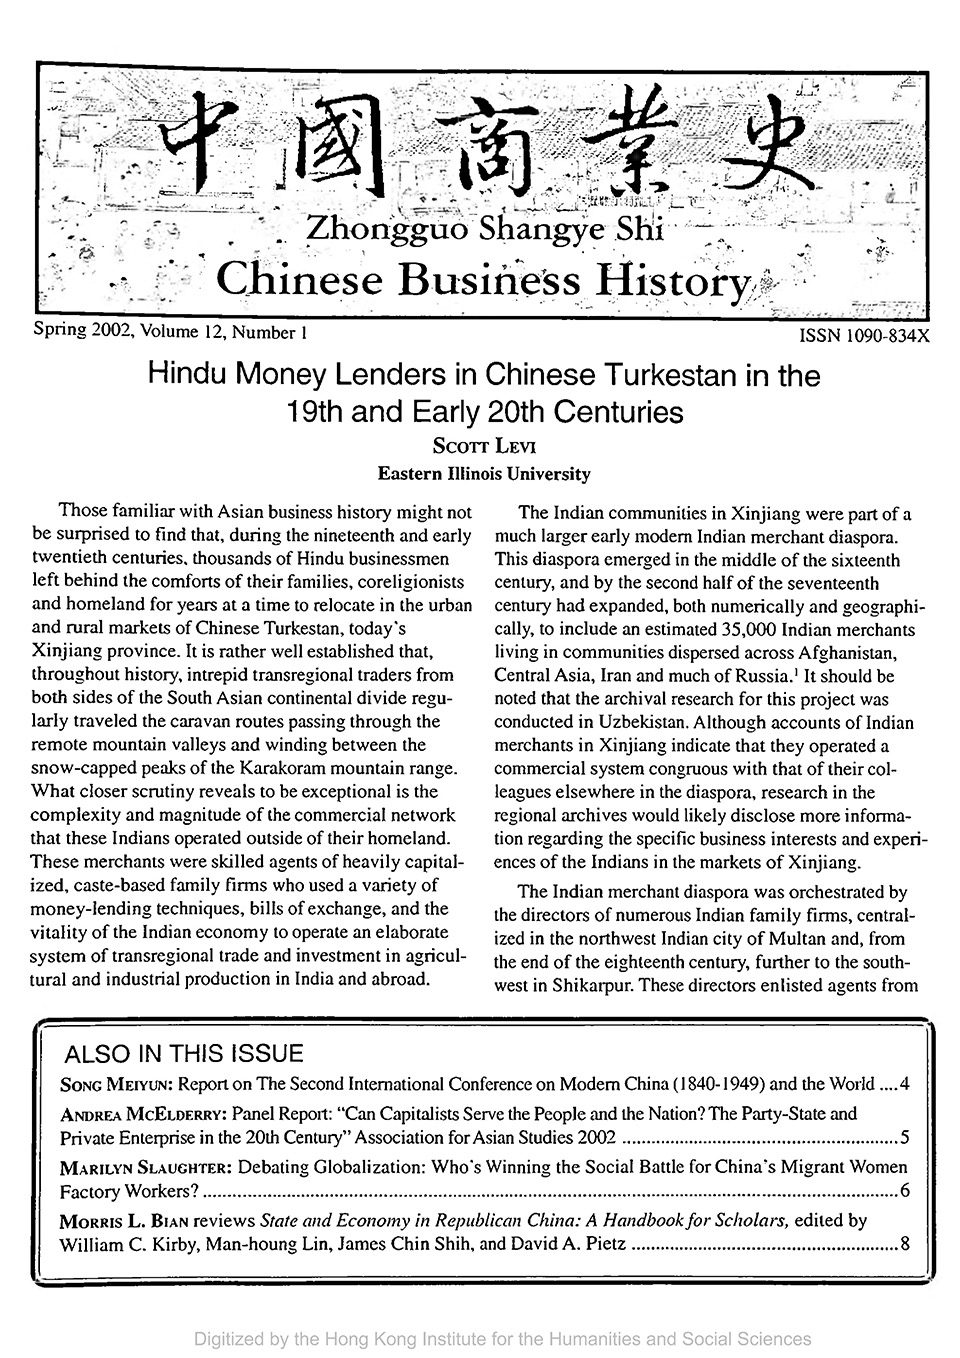 Cover of Chinese Business History Journal Volume 12, Number 1